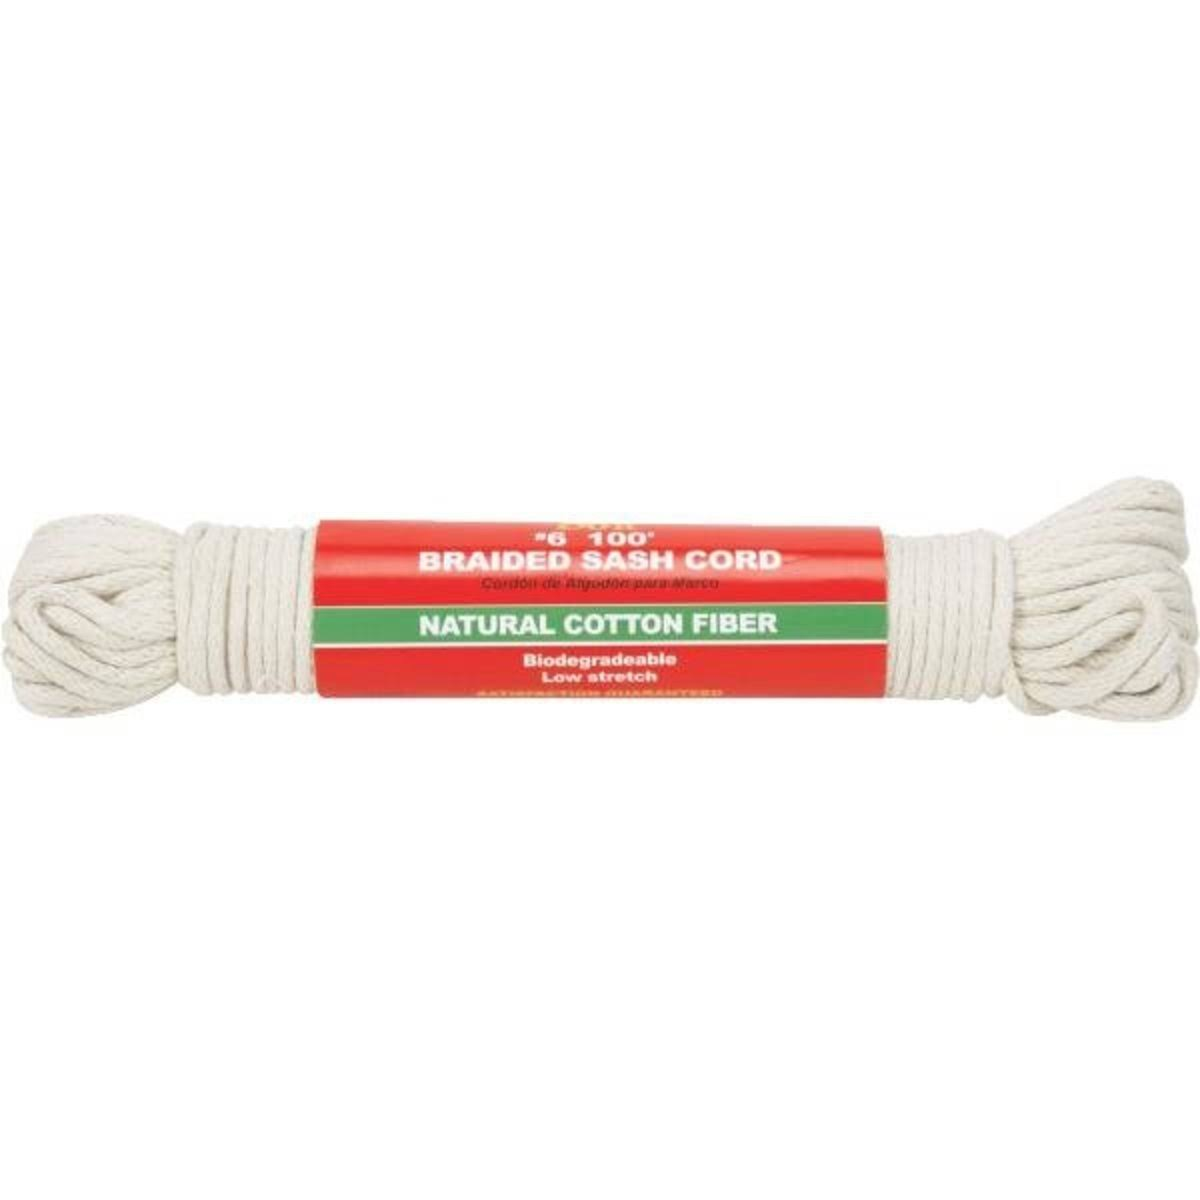 Do It Solid Braided Cotton Sash Cord - Size 6, 100'